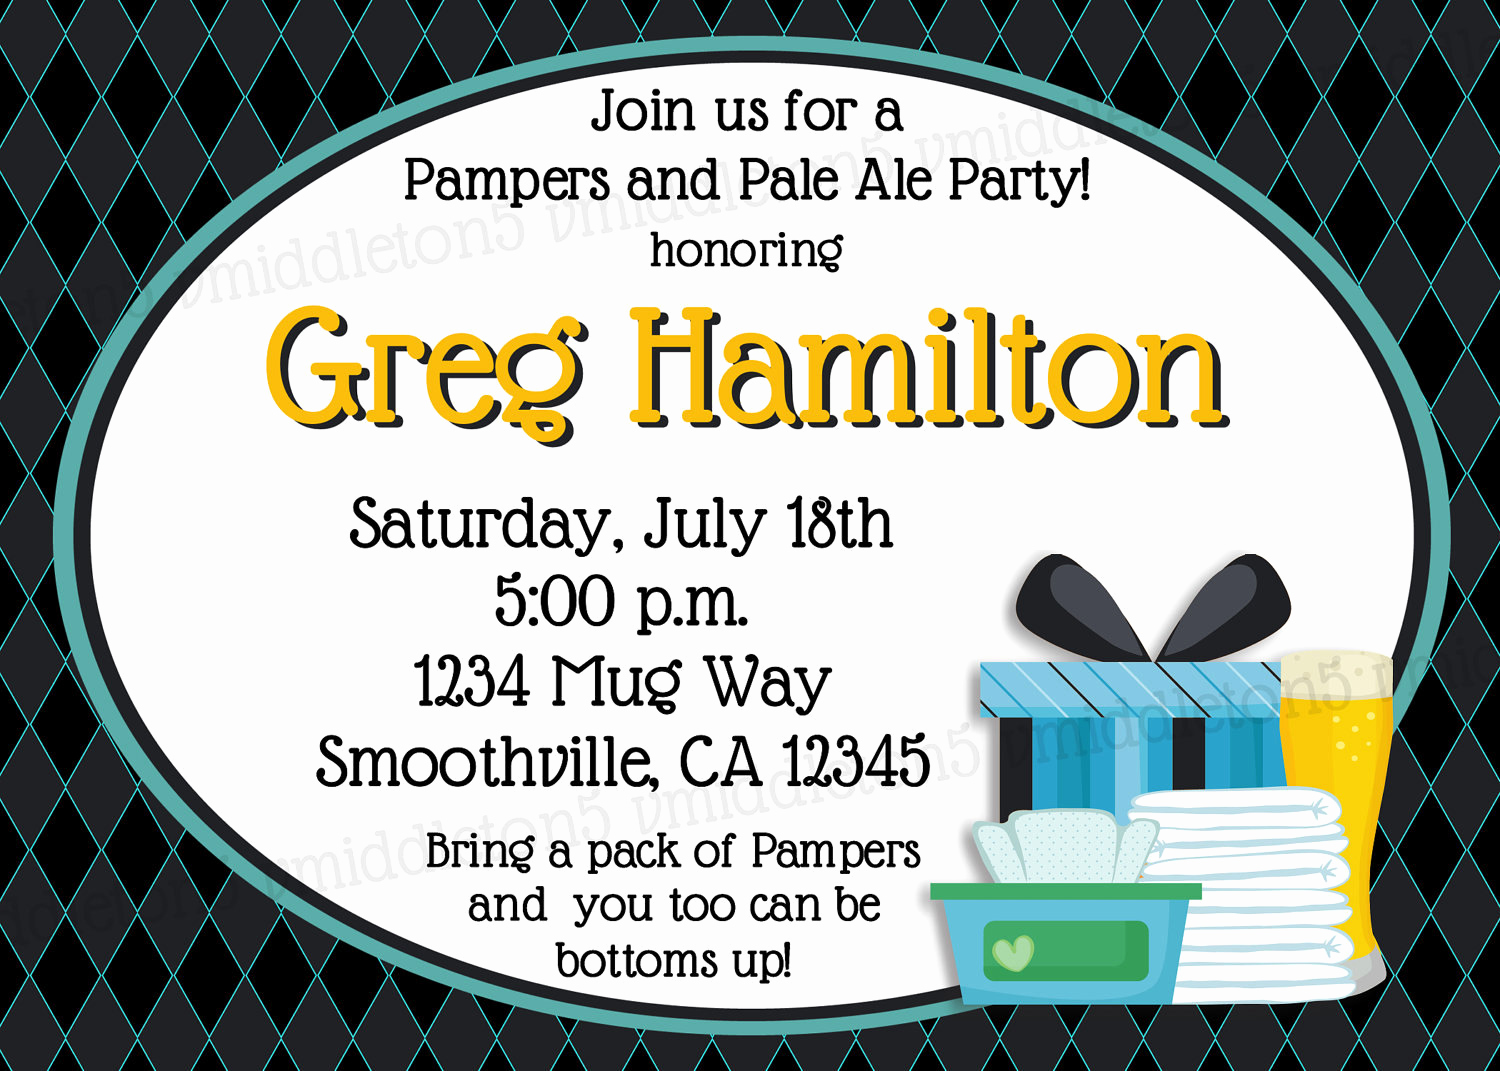 Cloth Diaper Baby Shower Invitation Lovely Man Diaper and Beer Baby Shower Pampers and Pale Ale Party